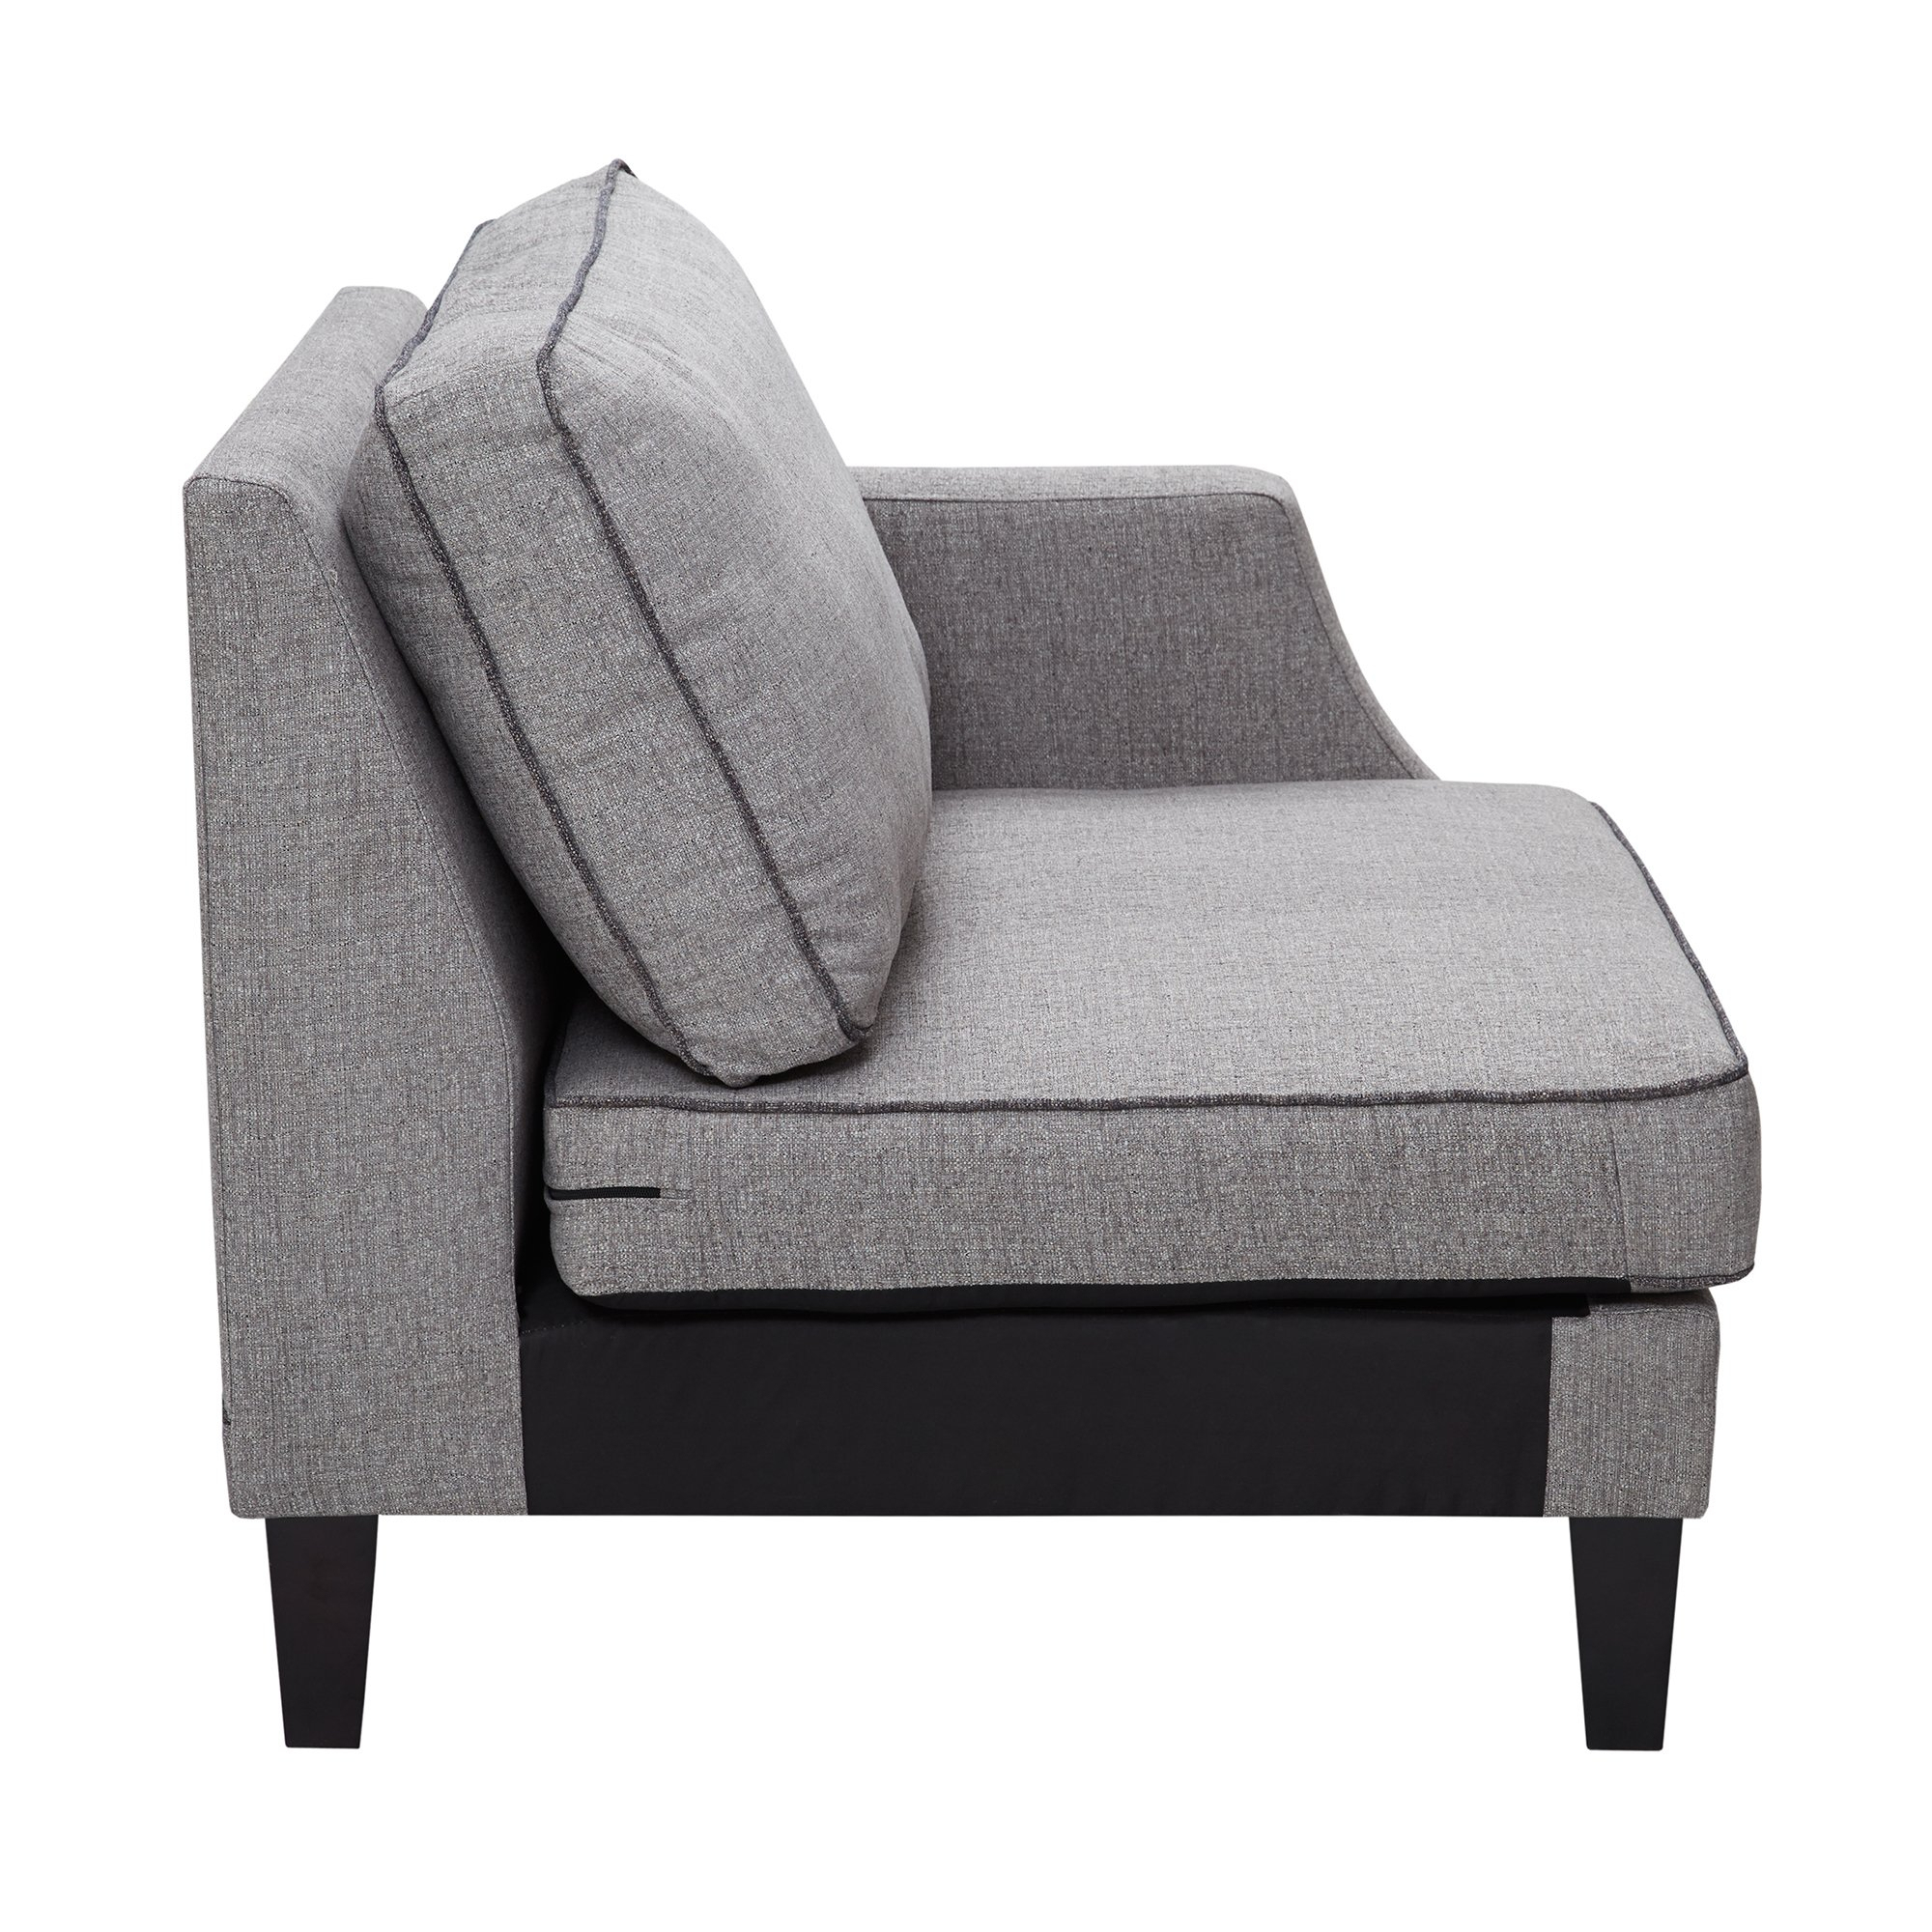 Shop Madison Park Signature Gordon Grey Sectional Sofa Right Arm Intended For Gordon Arm Sofa Chairs (Image 18 of 20)